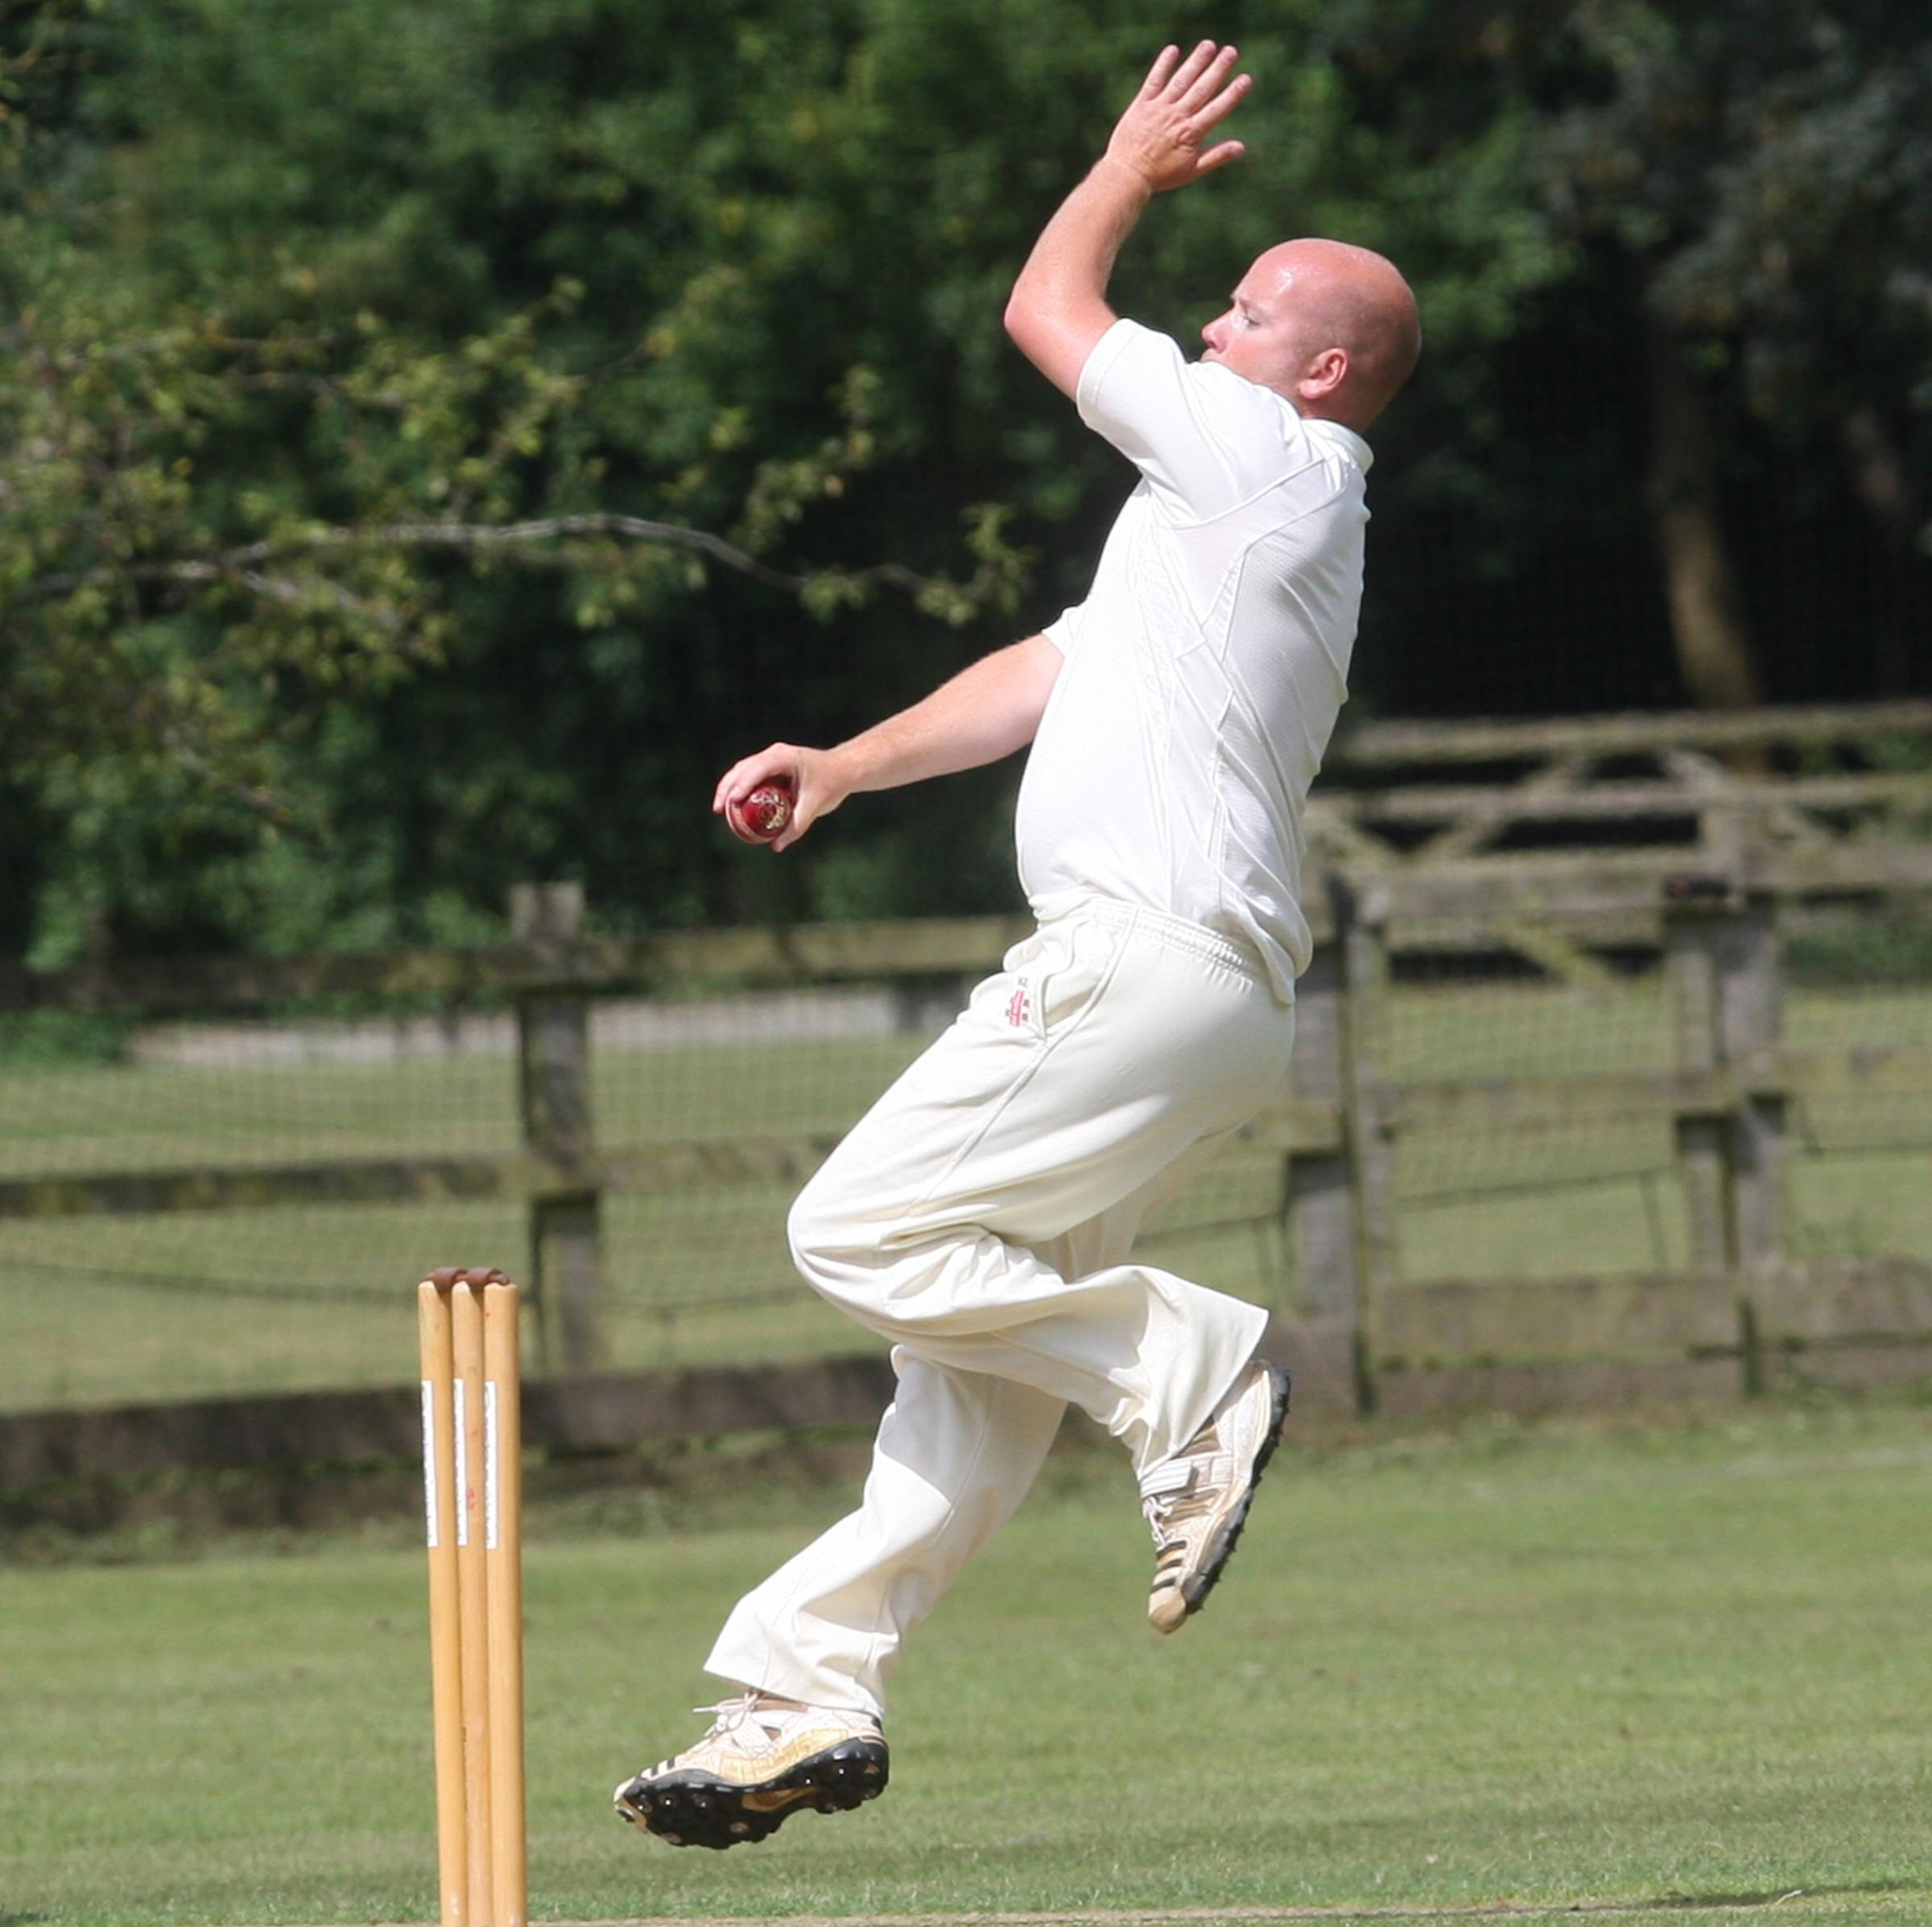 Horspath captain Will Eason will make his one-day competitive debut for Oxfordshire